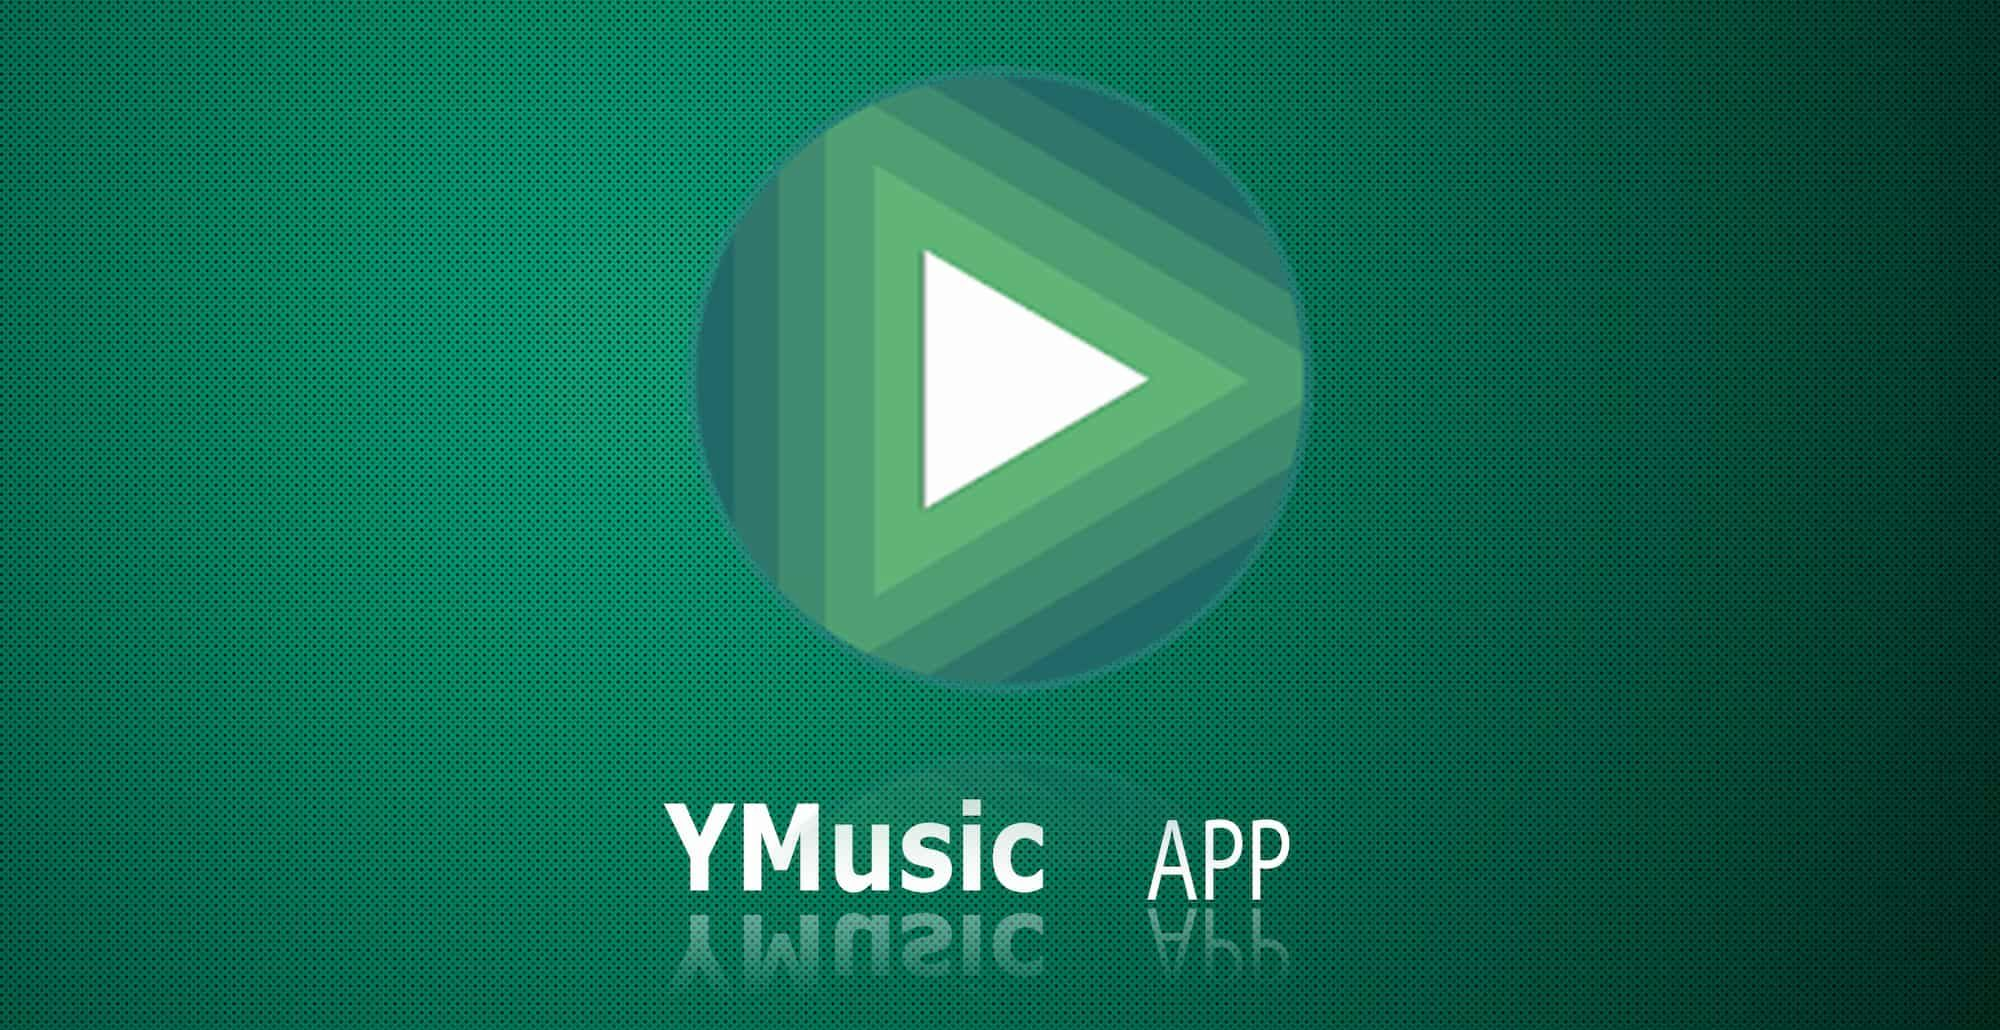 YMusic Android in 2020 Music app, App, App background